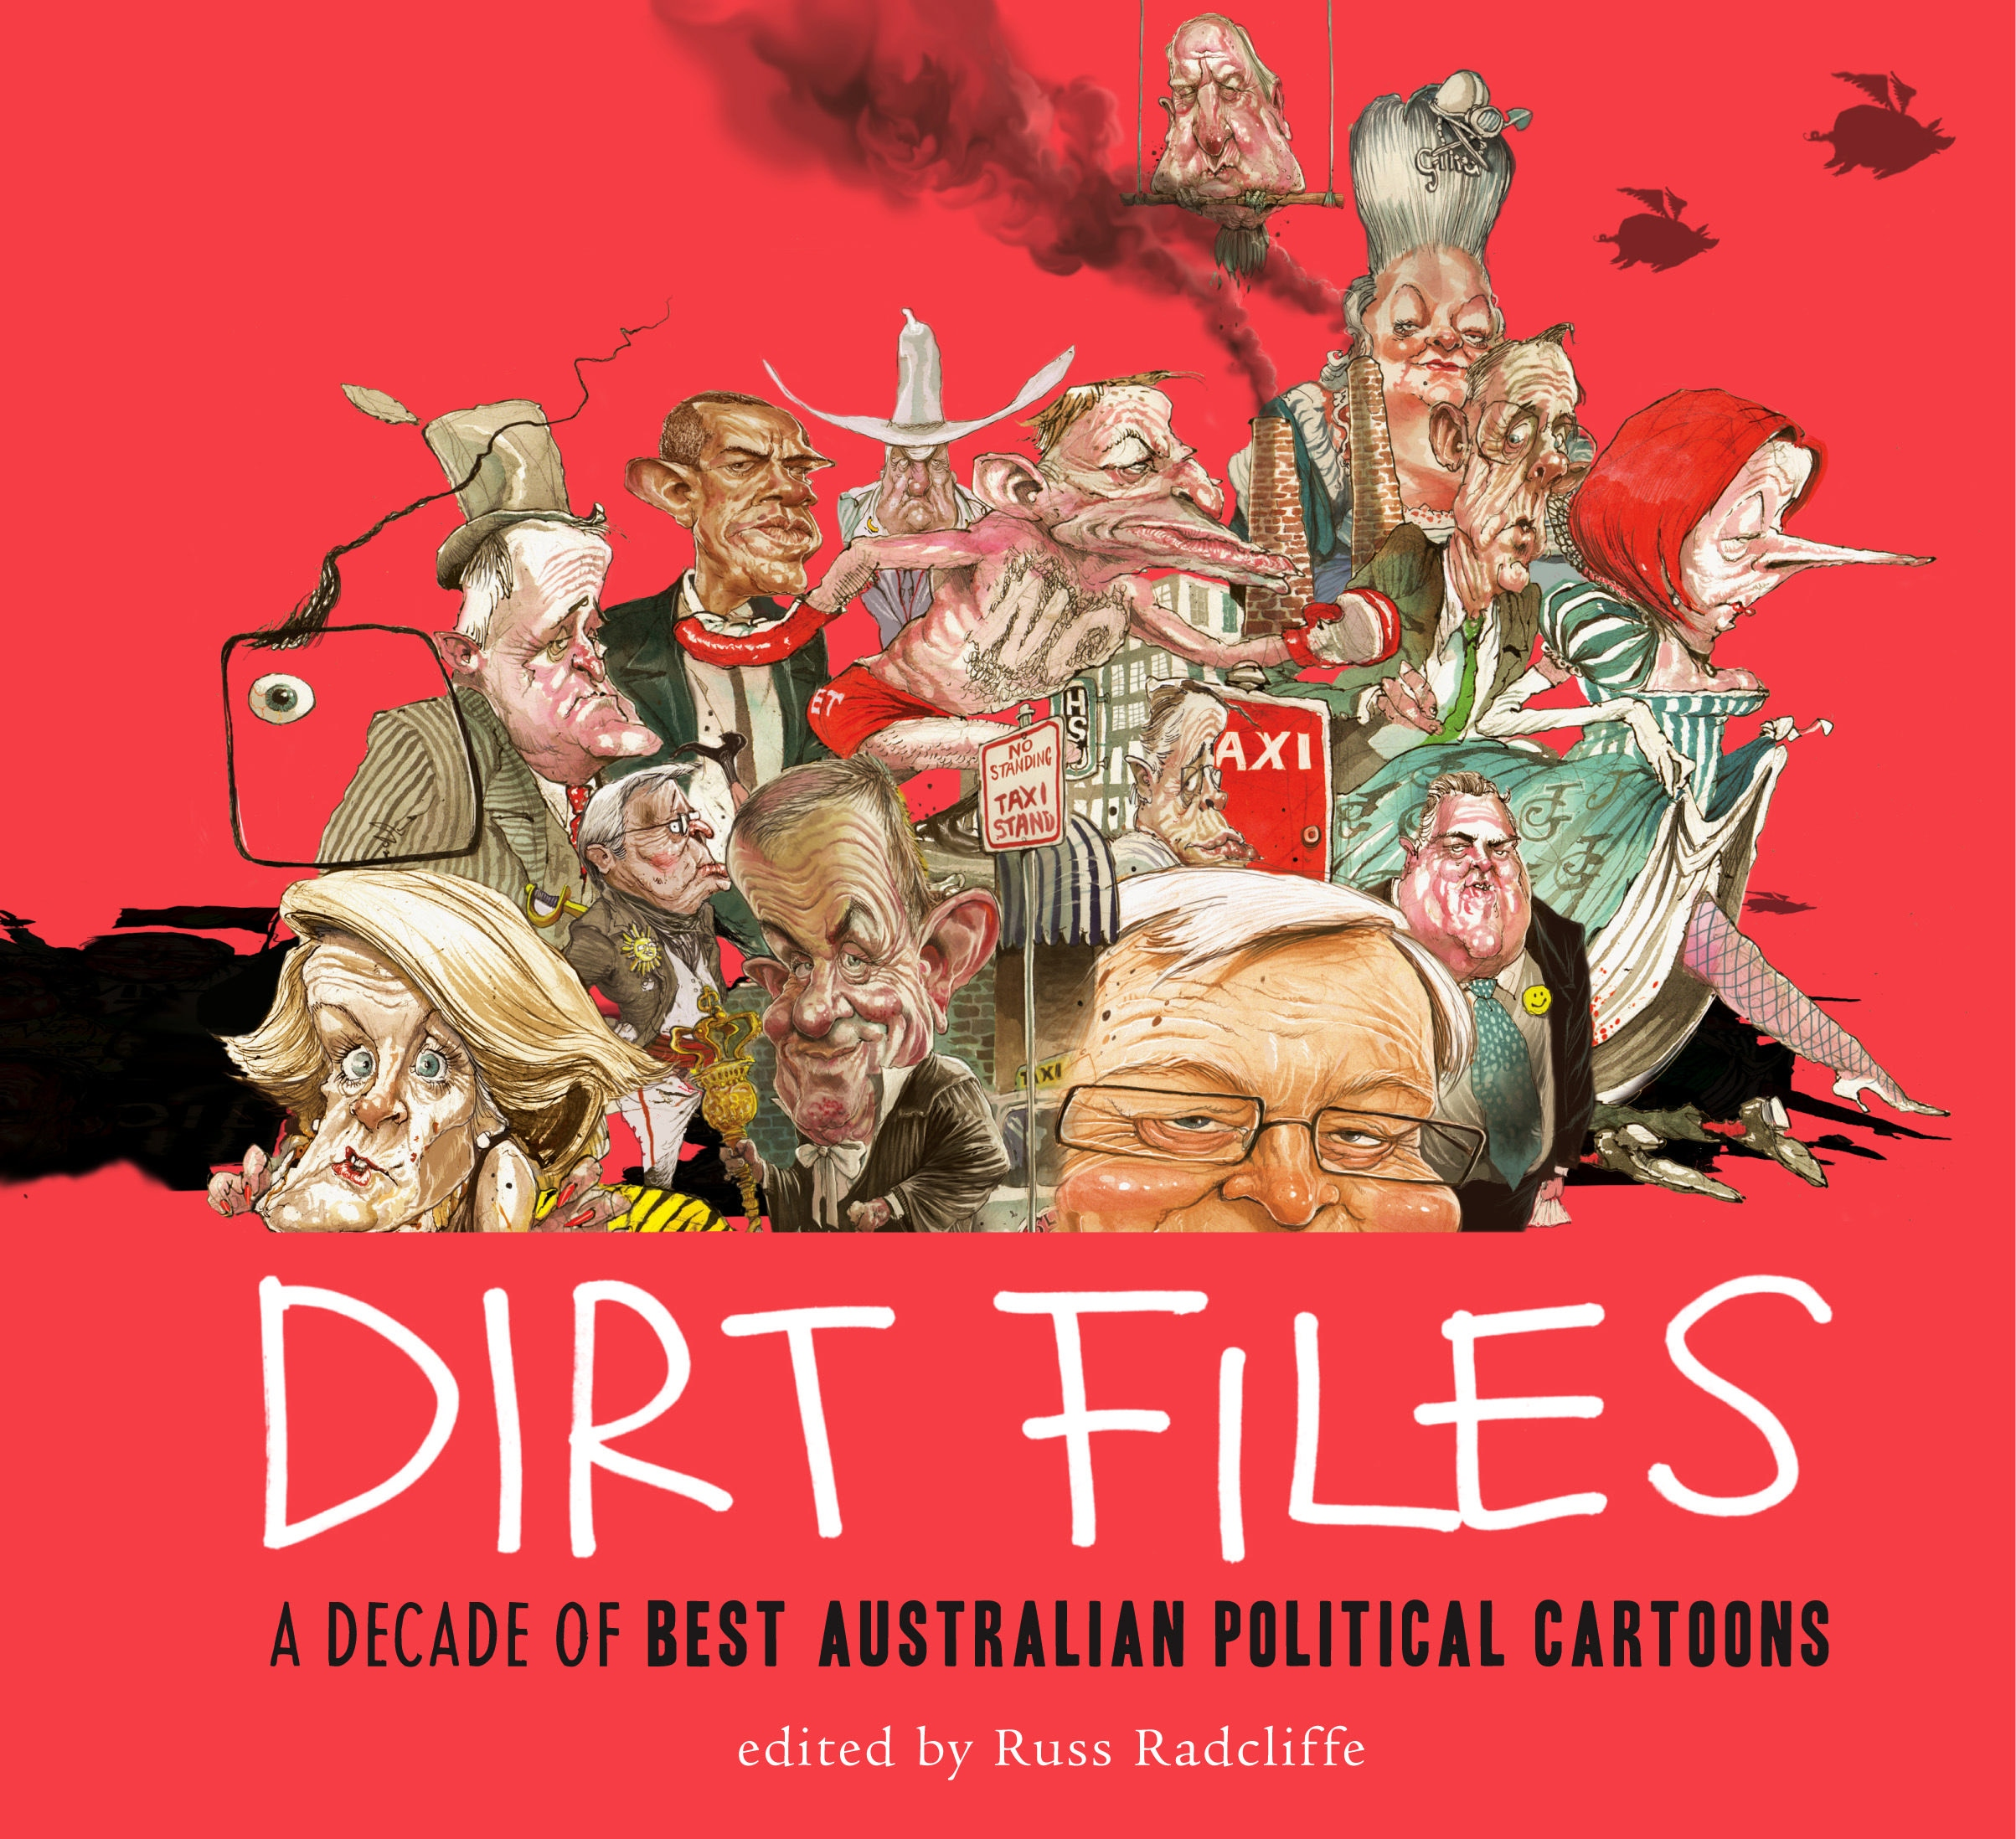 Dirt Files: A Decade of Best Australian Political Cartoons